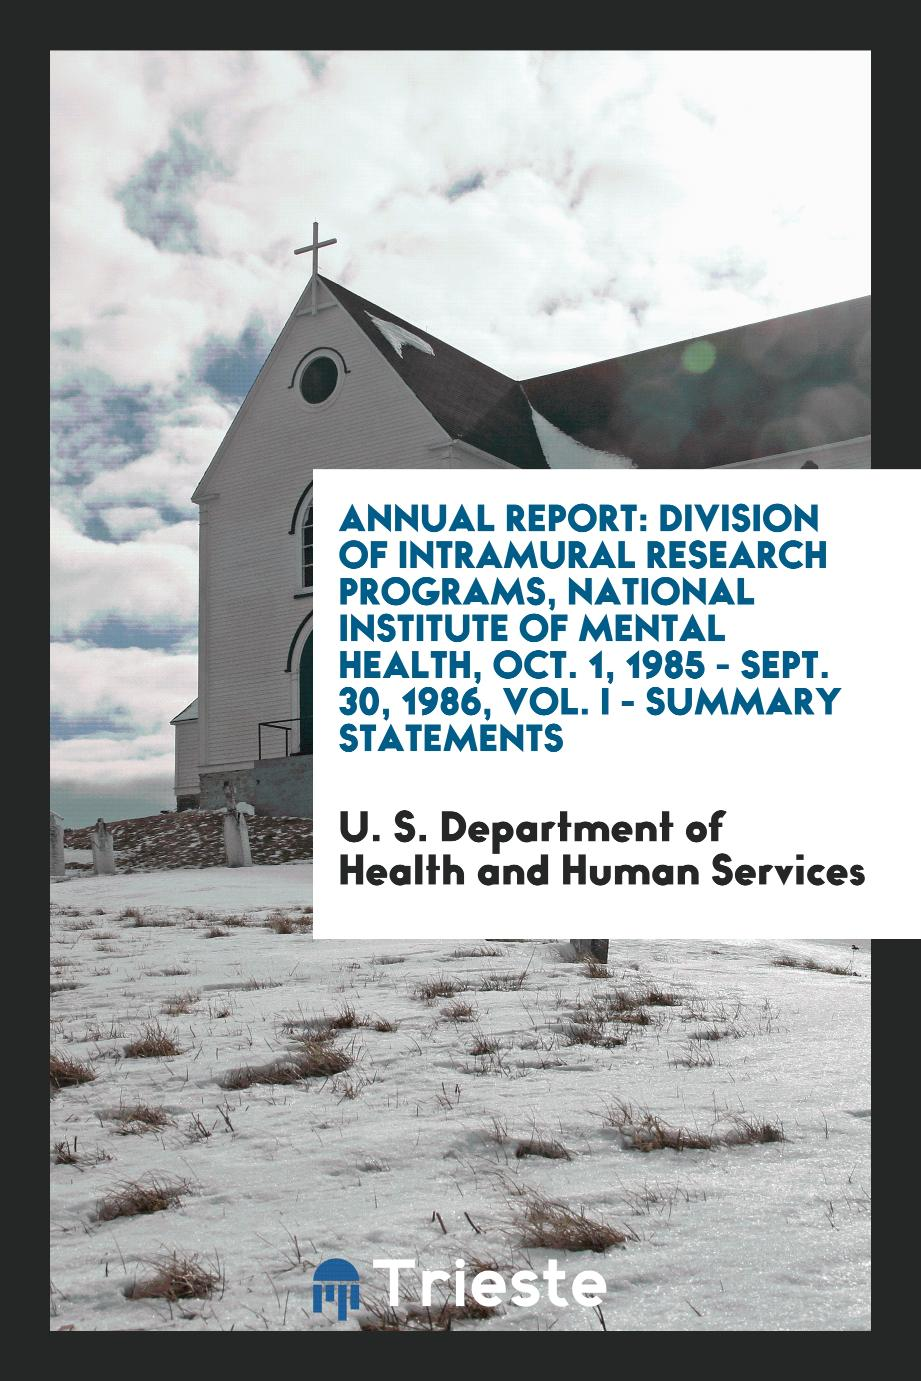 Annual report: Division of Intramural Research Programs, National Institute of Mental Health, Oct. 1, 1985 - Sept. 30, 1986, Vol. I - summary statements